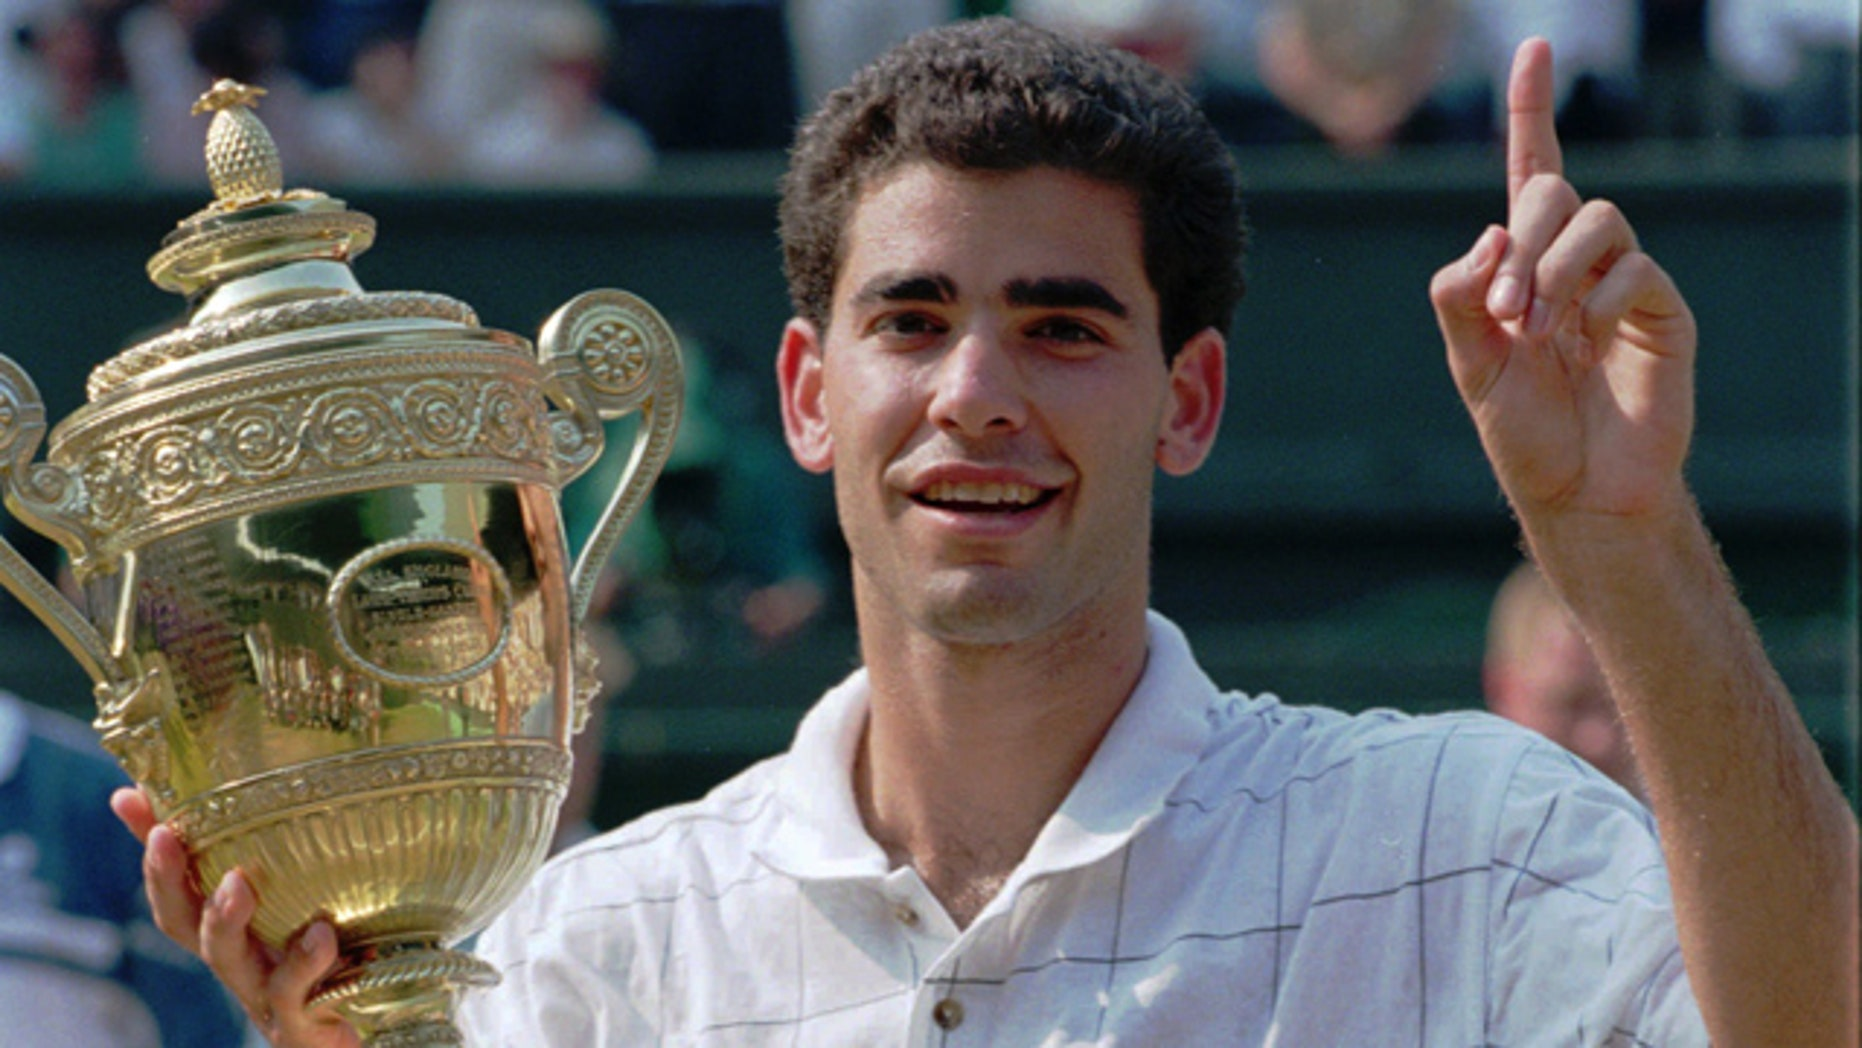 Pete Sampras indicates he is number one while holding his trophy after defeating Boris Becker to win the Men's Single's Final on Centre Court at Wimbledon, in this July 9, 1995 file photo.